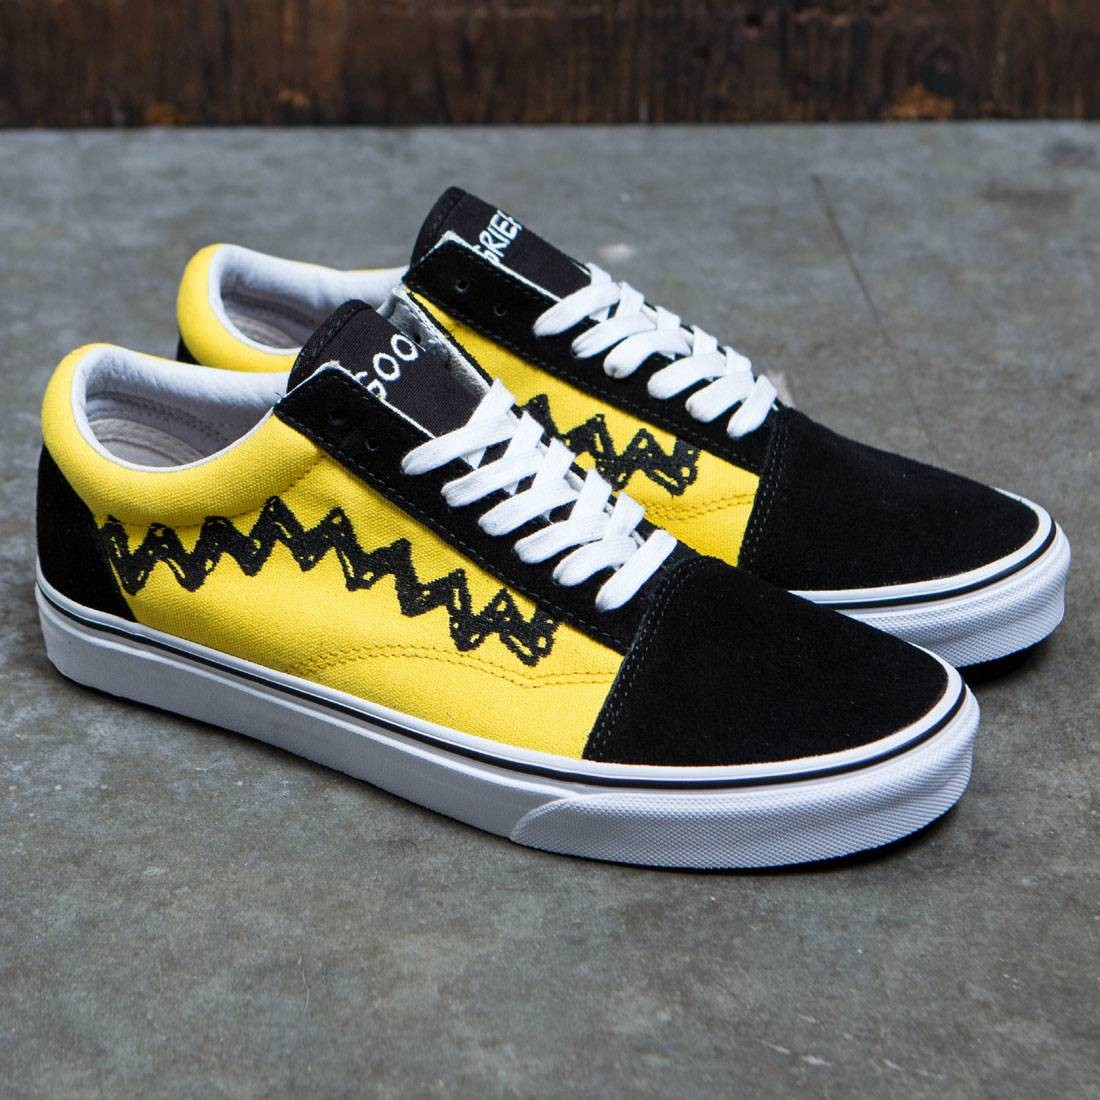 old skool x peanuts